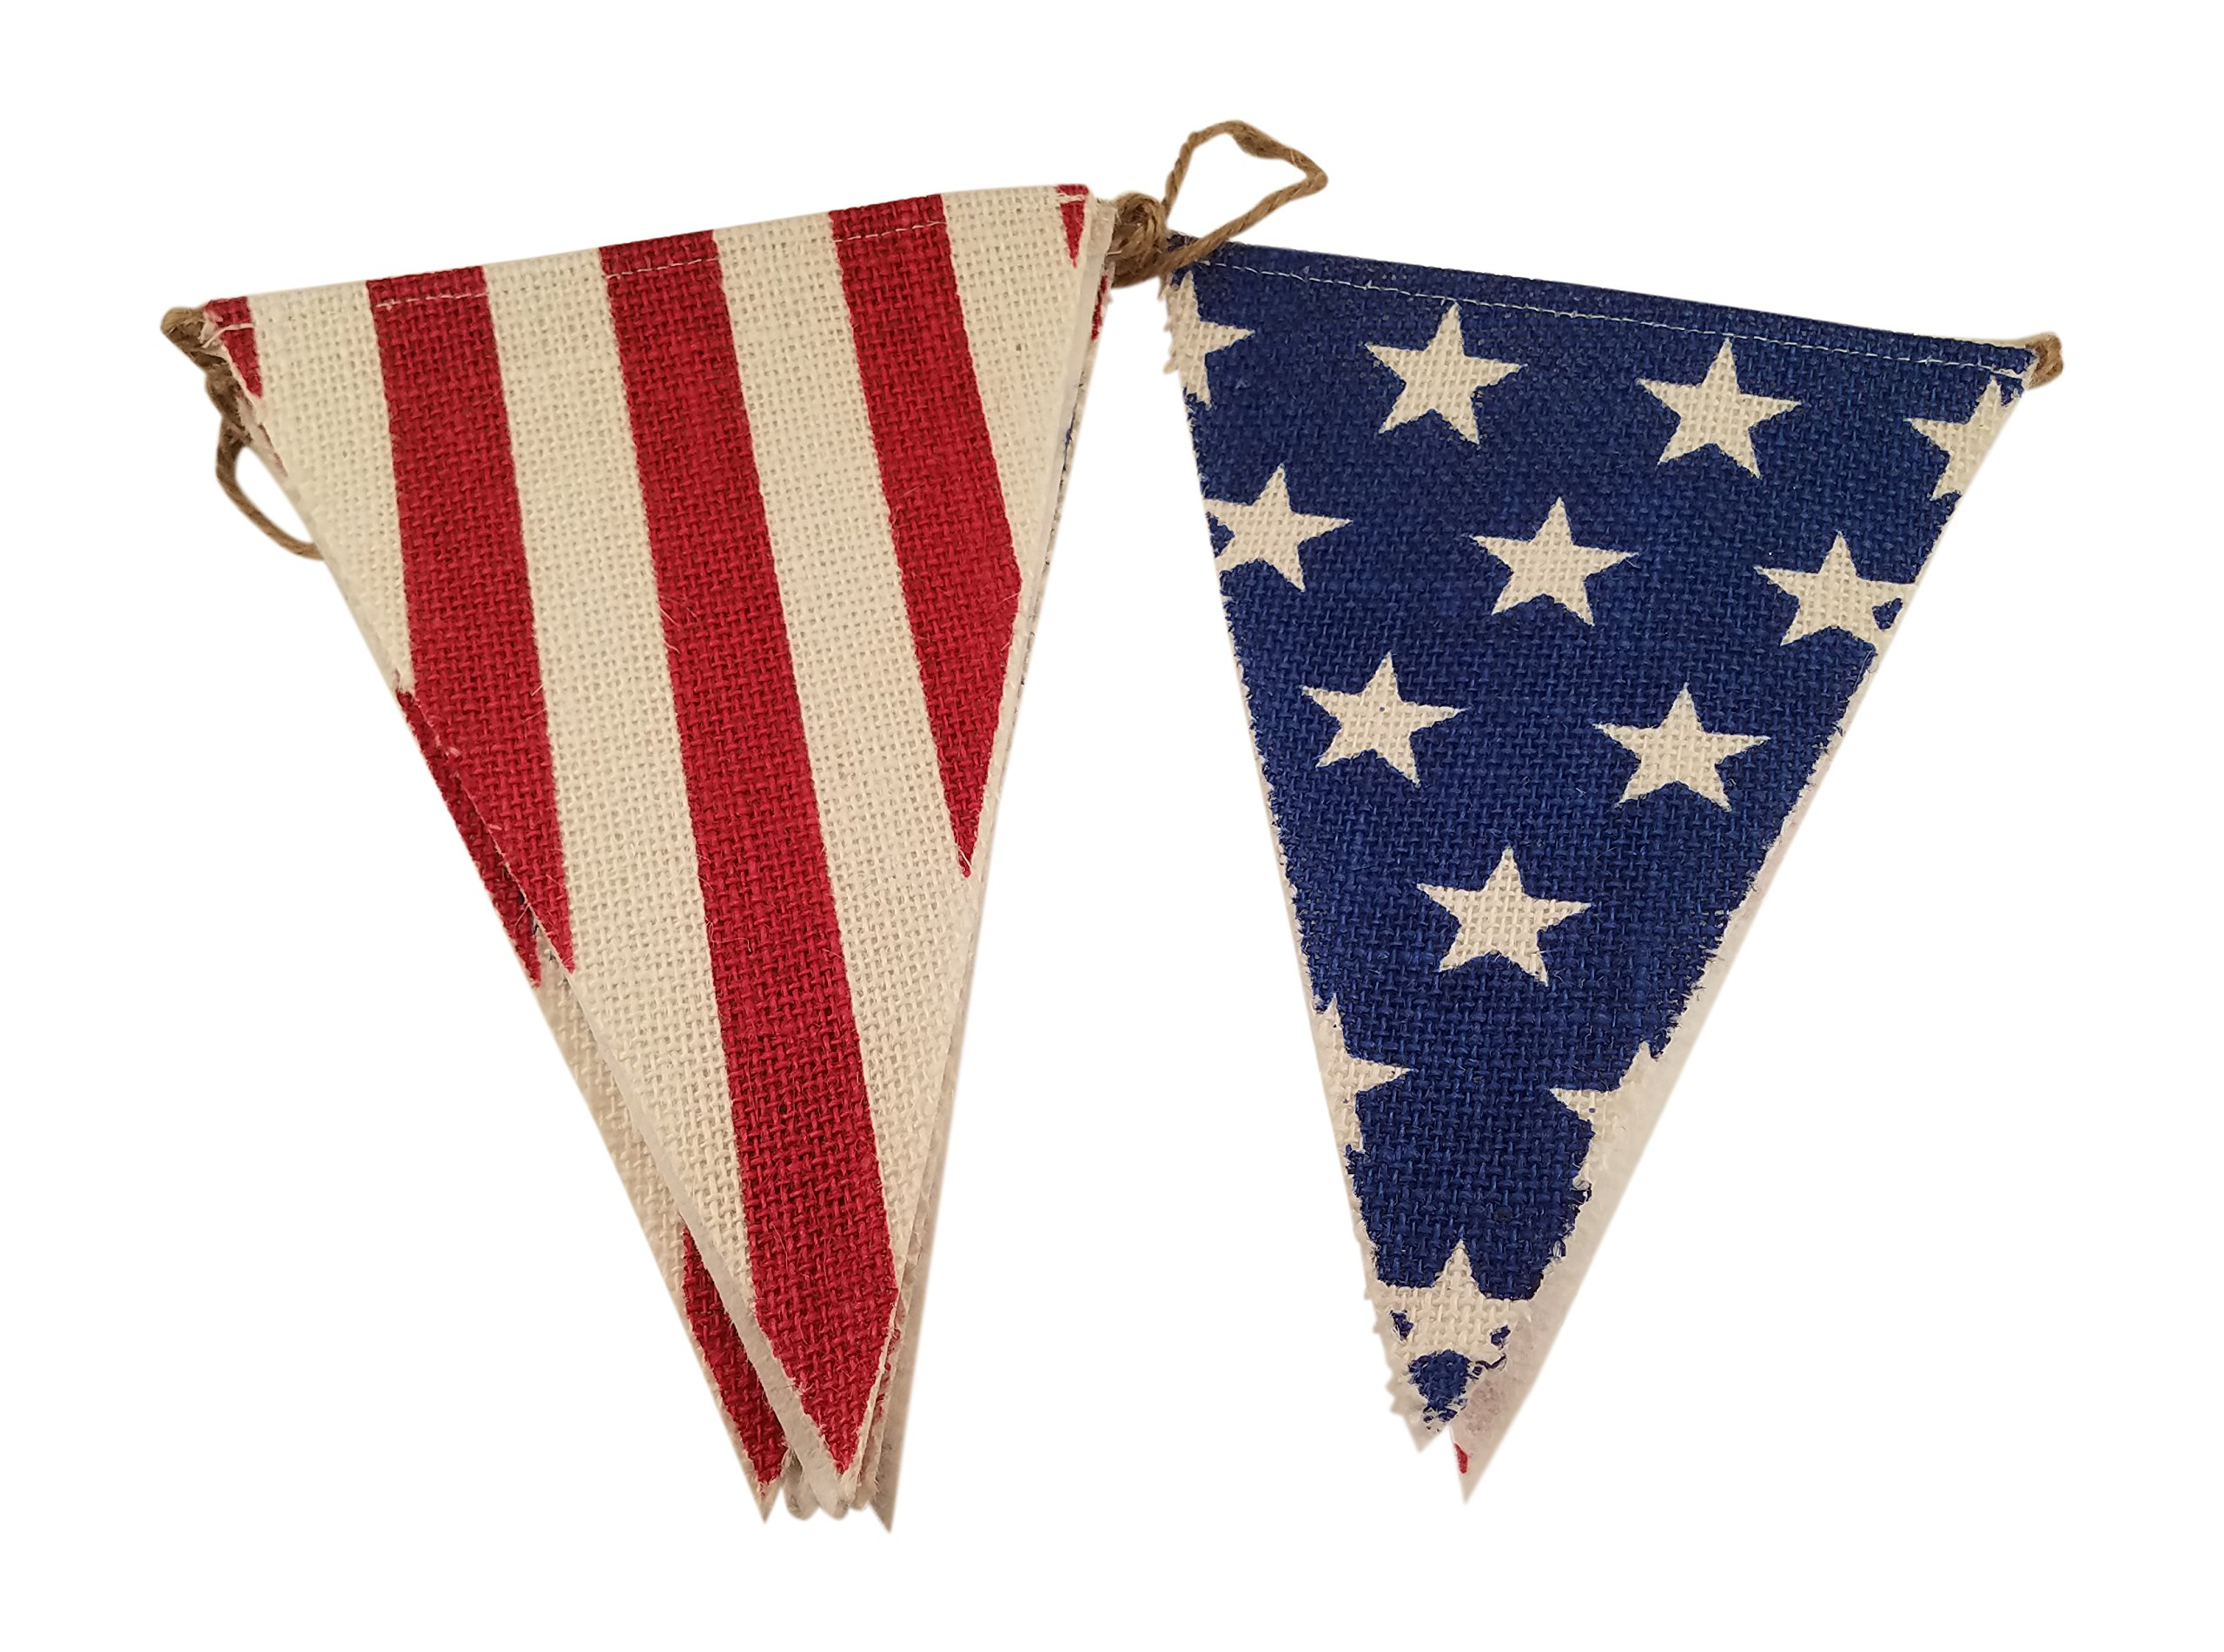 Burlap Flag Banner with Stars and Stripes 4th of July American Flag Print by 3Cats Art Supplies (Image #1)